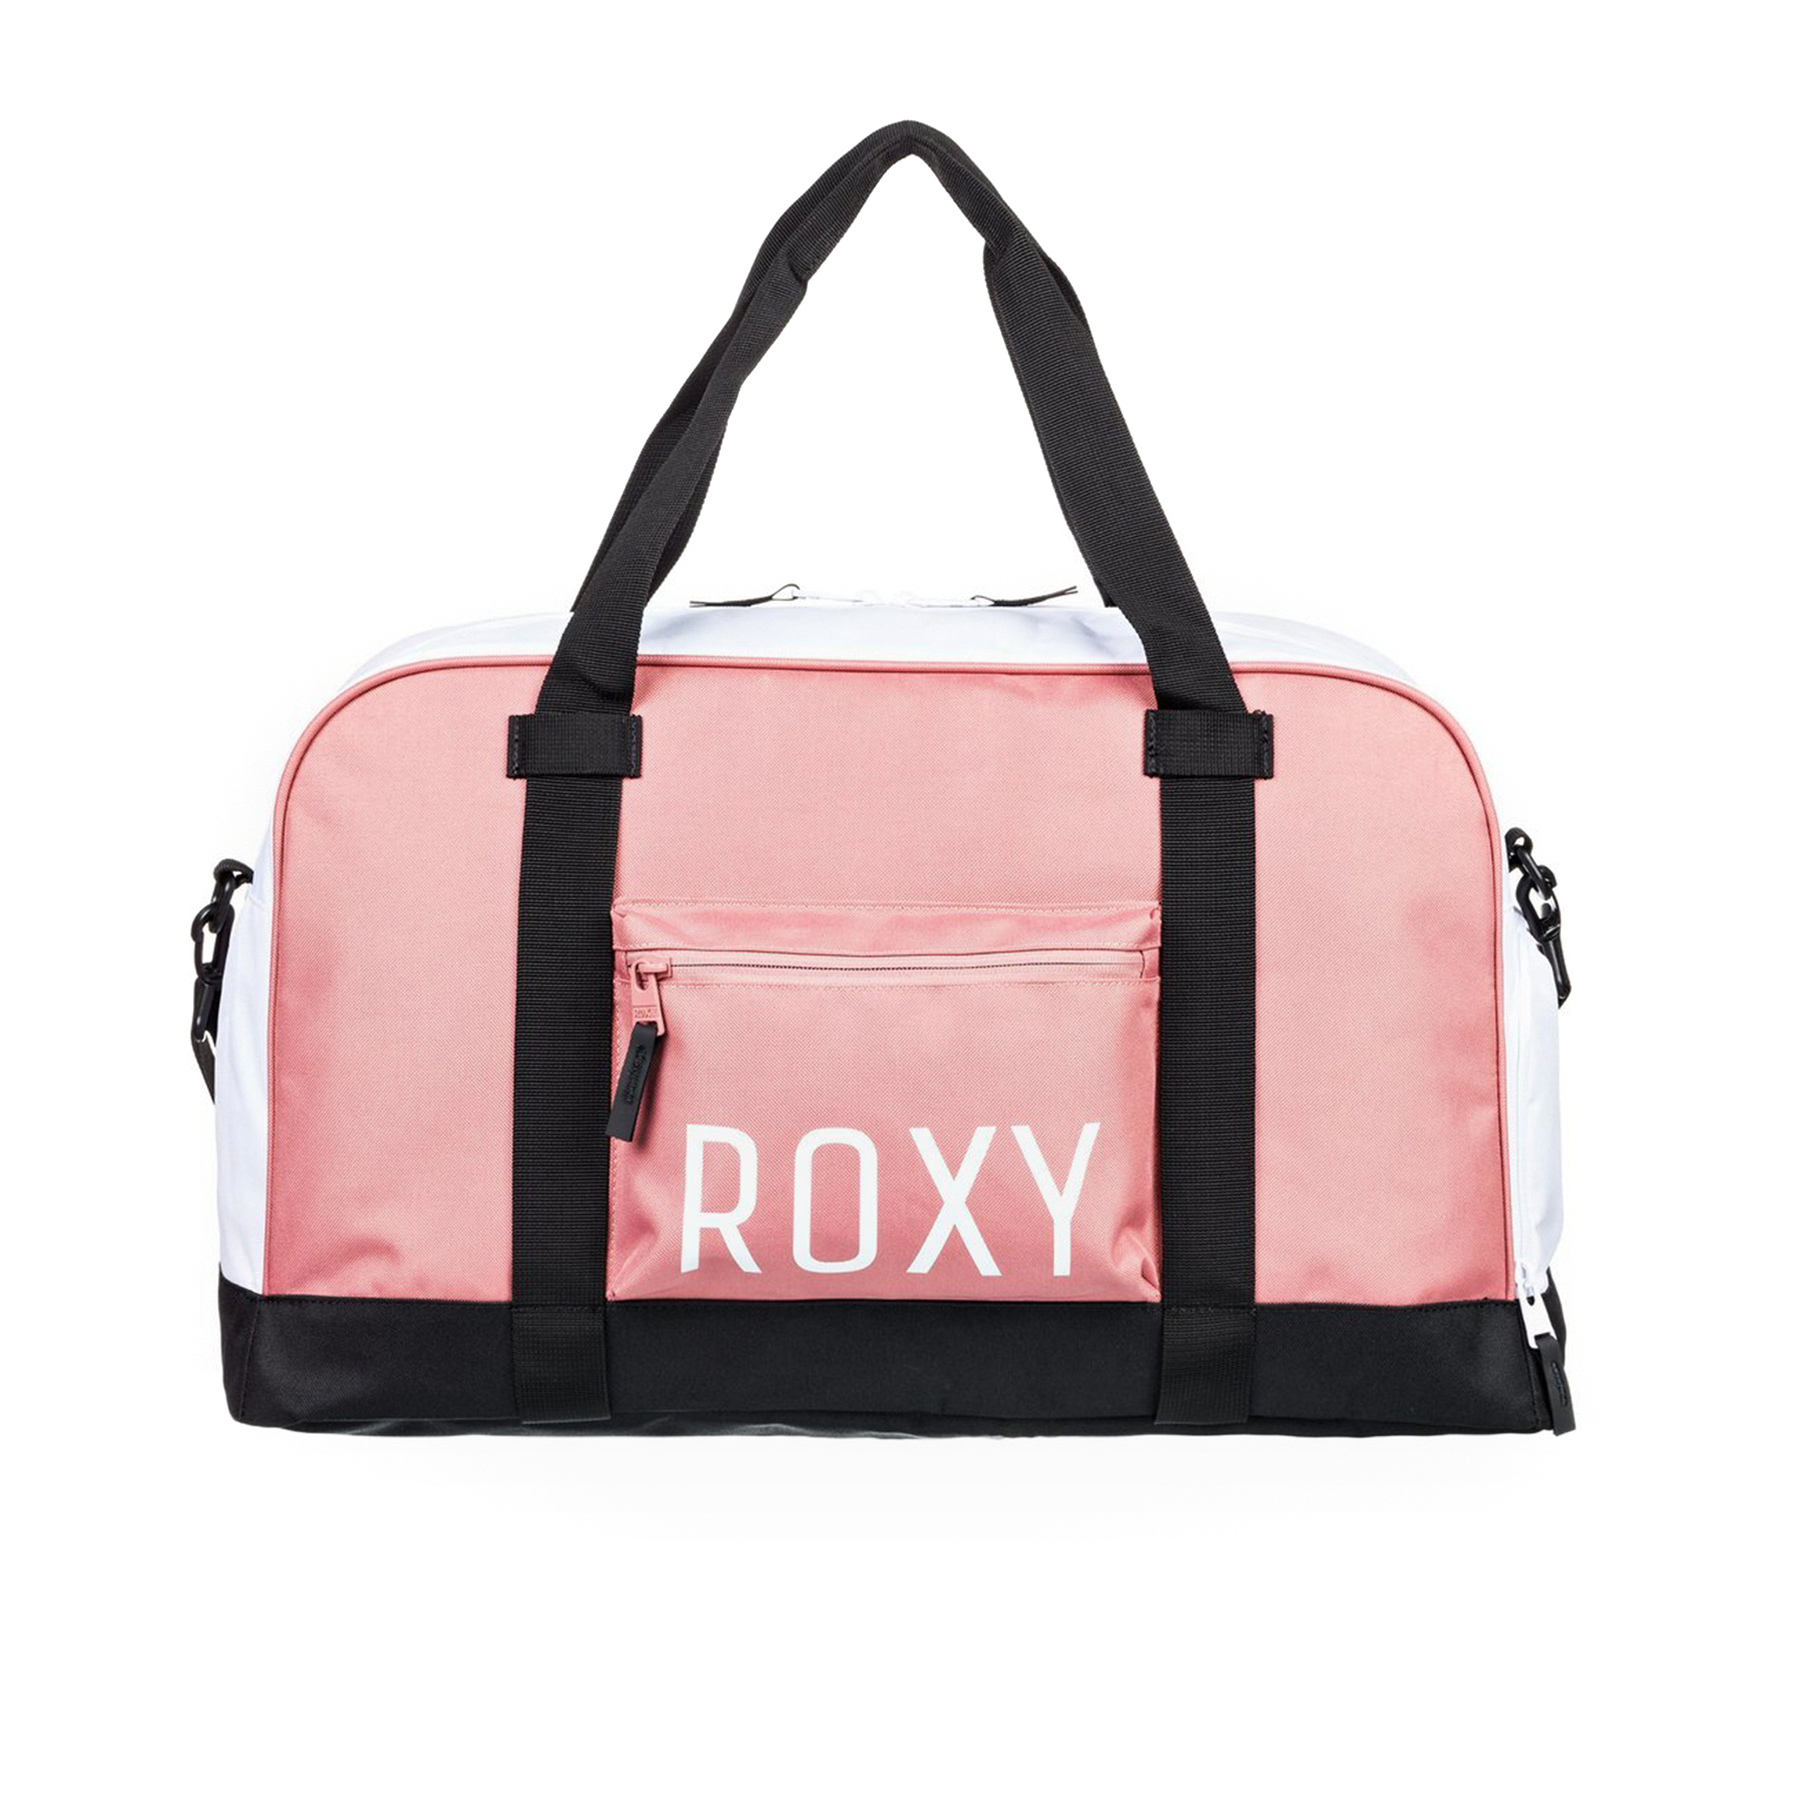 womens duffle bag